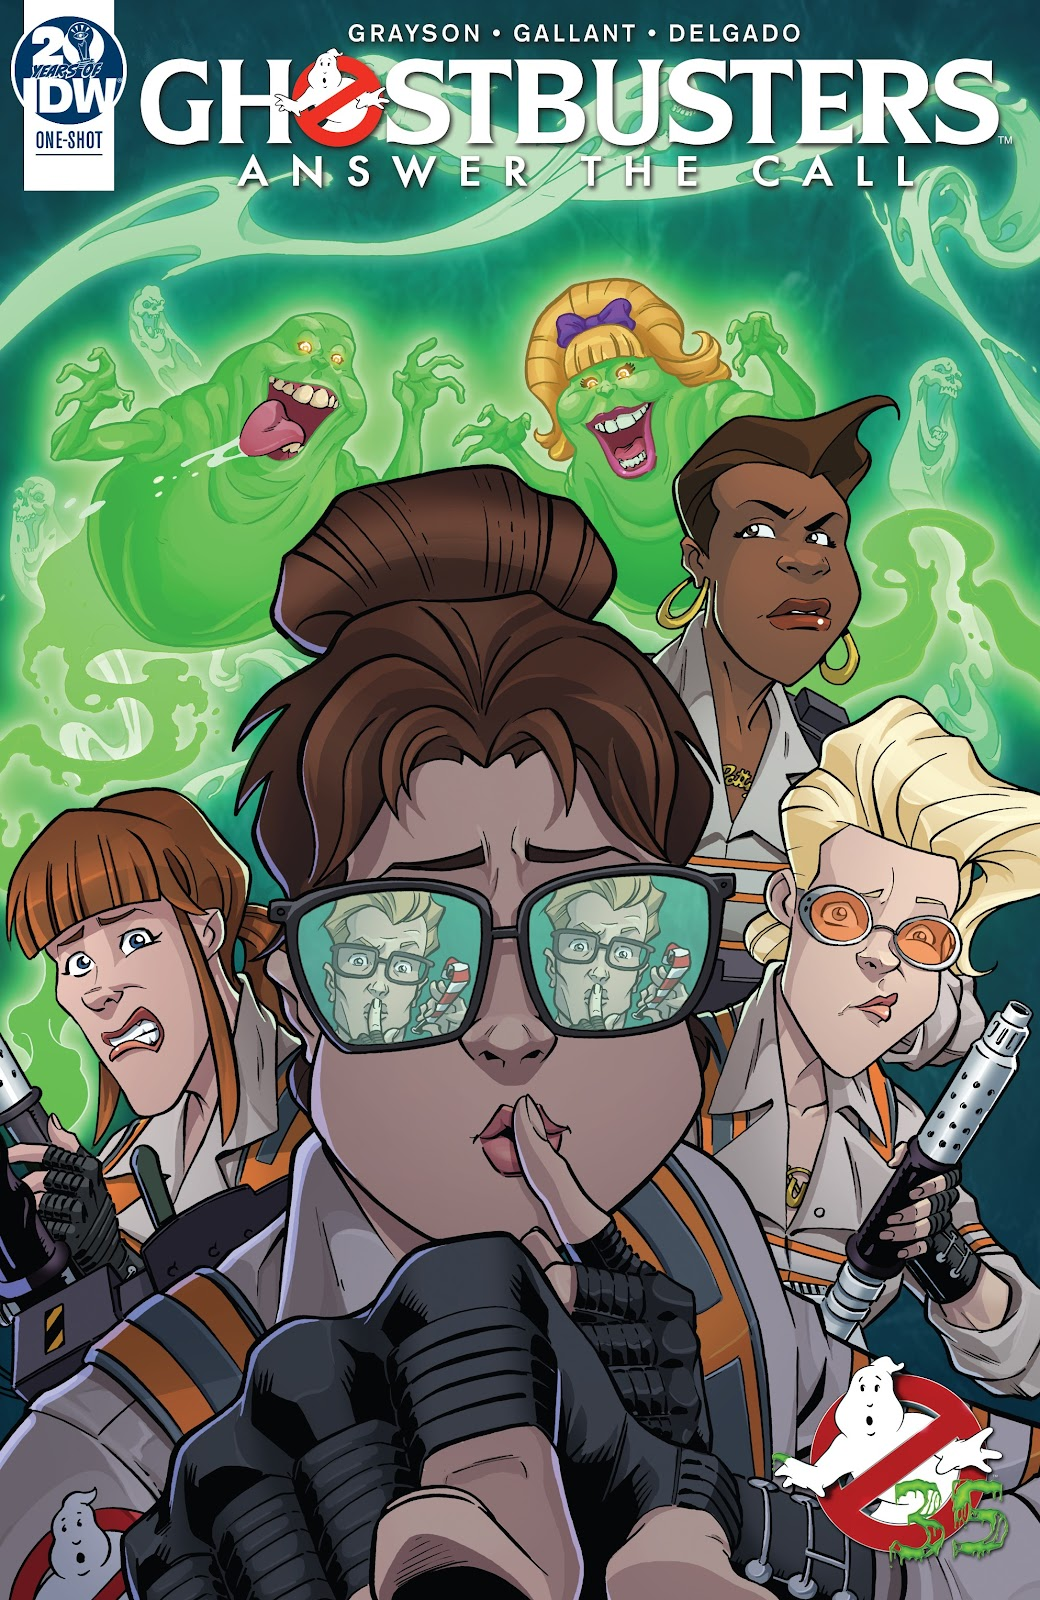 Read online Answer the Call Ghostbusters 35th Anniversary comic -  Issue # Full - 1